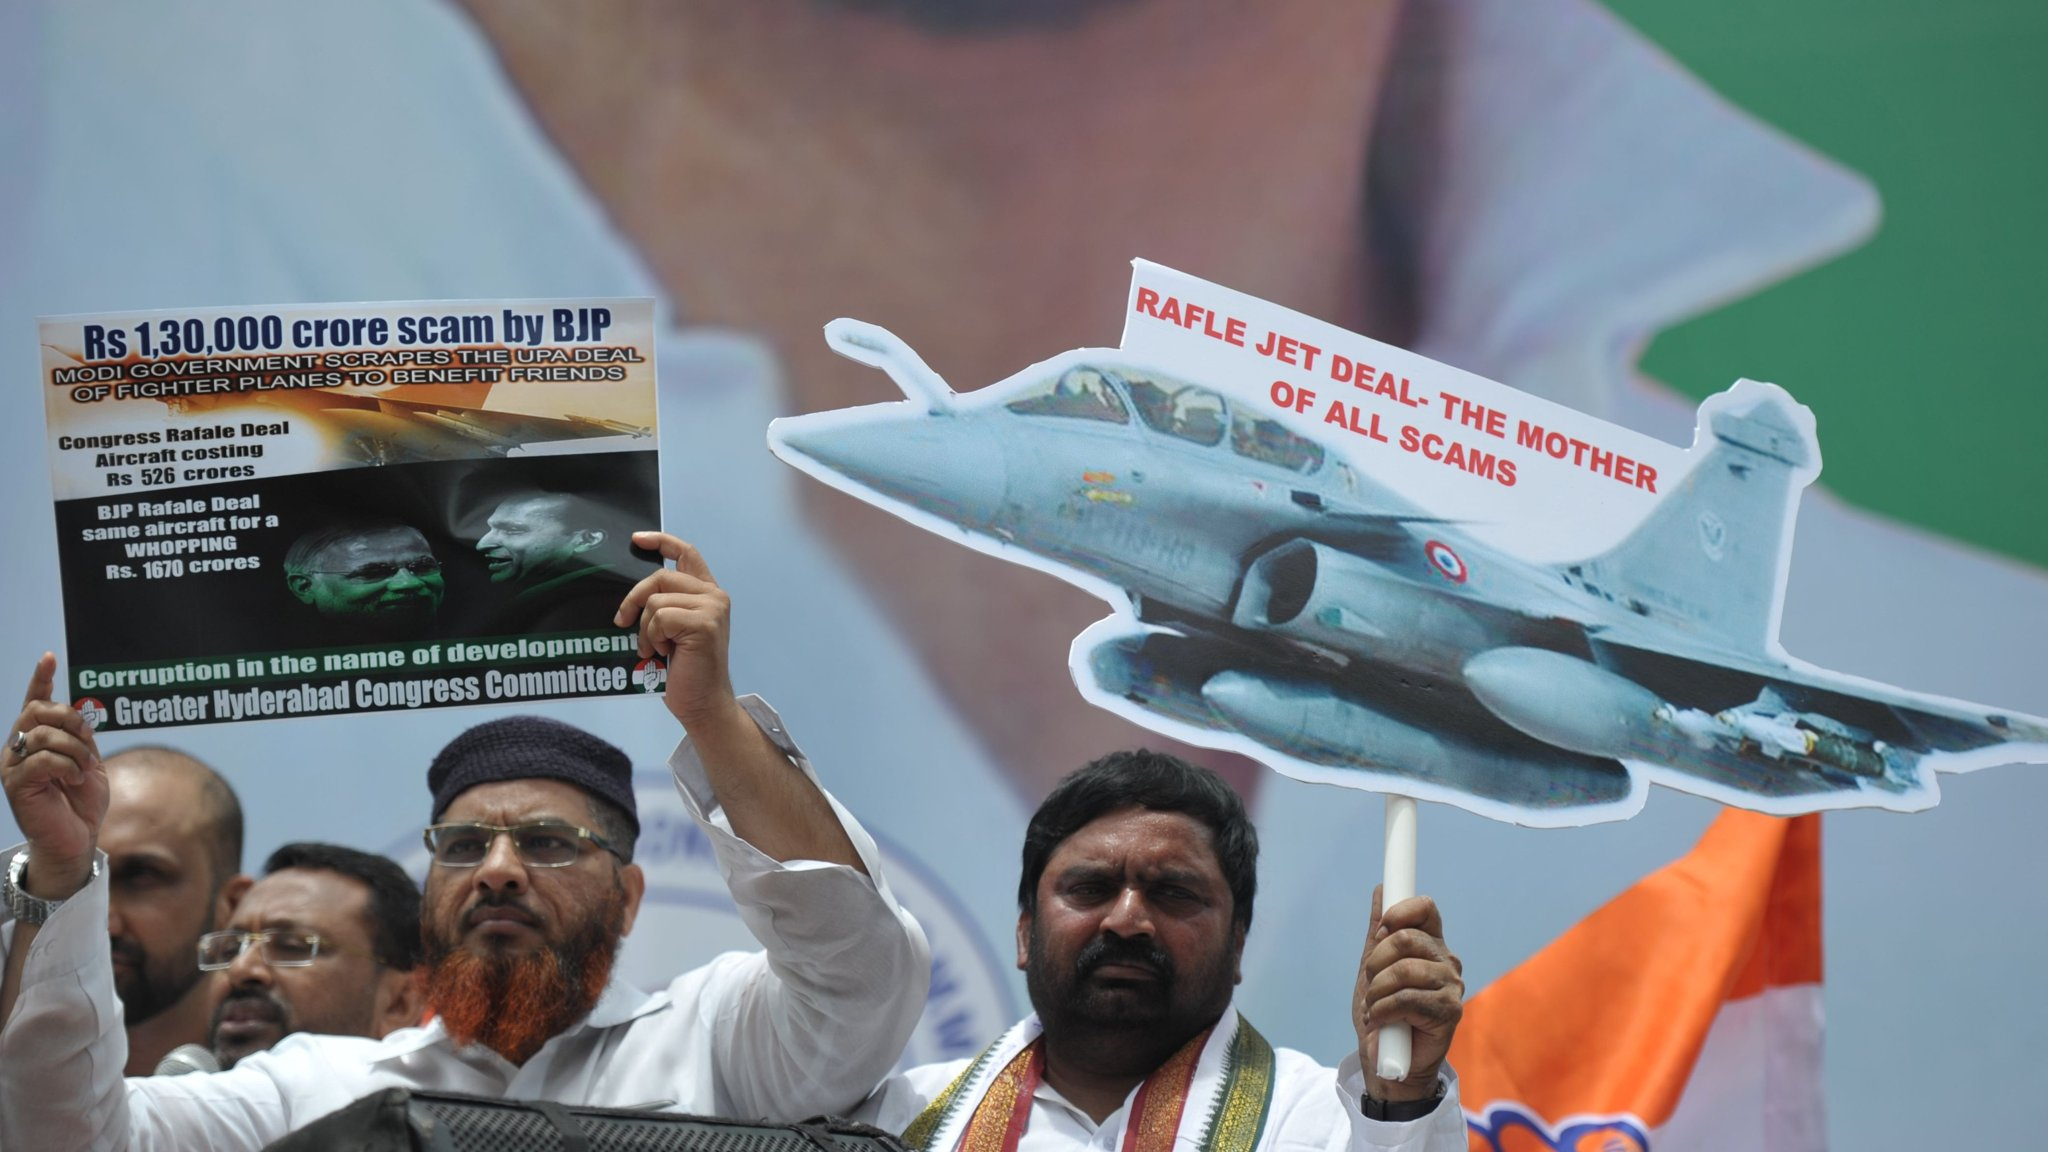 The scandal around the French-Indian deal on fighter Rafale